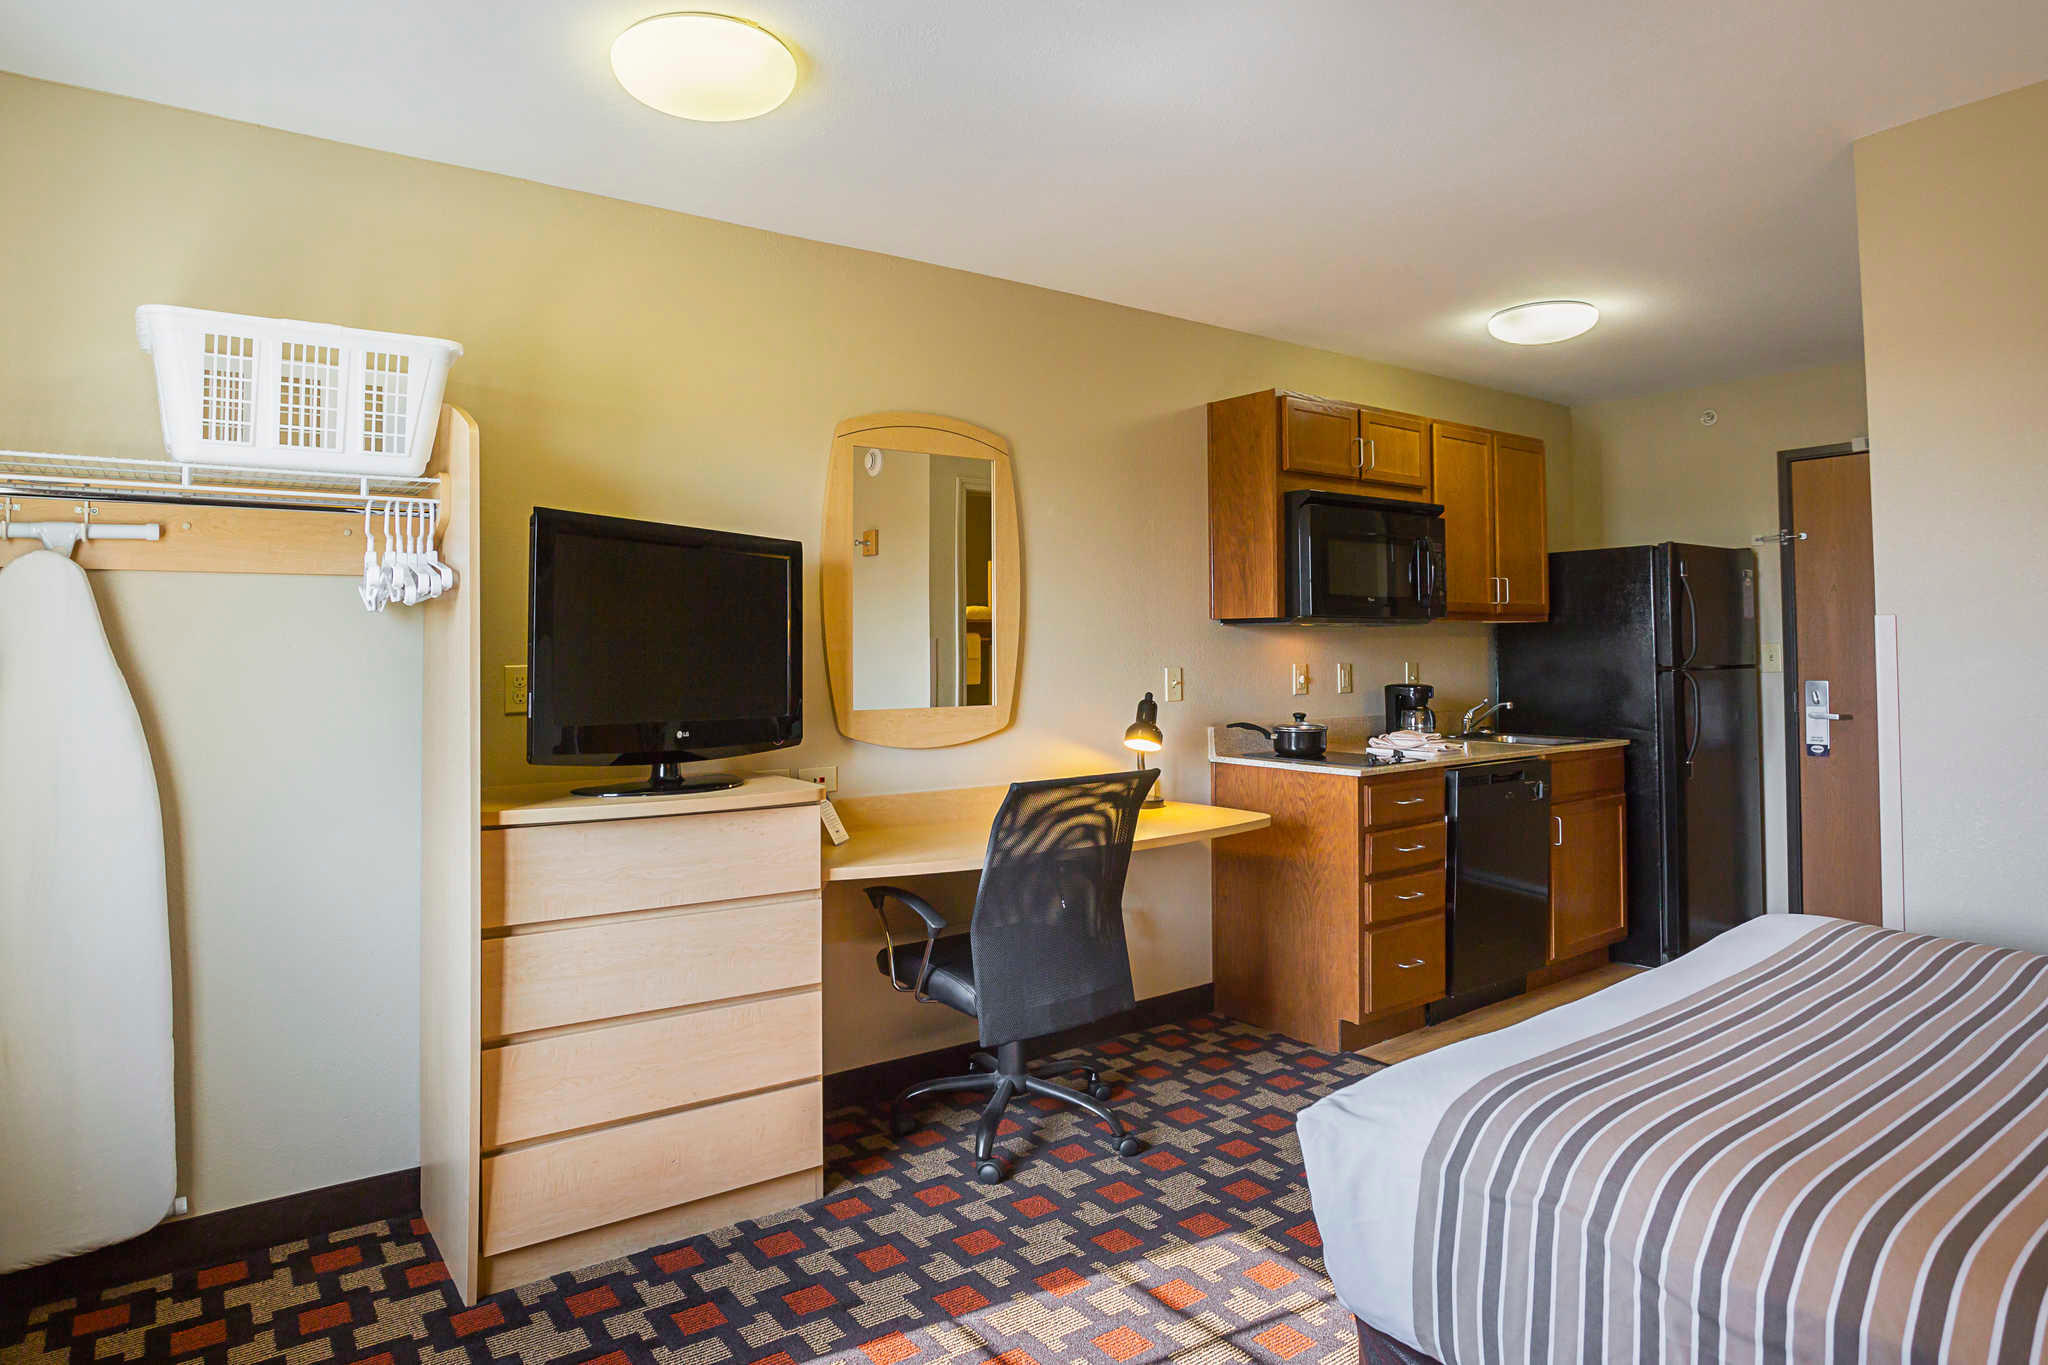 Suburban Extended Stay Hotel image 11